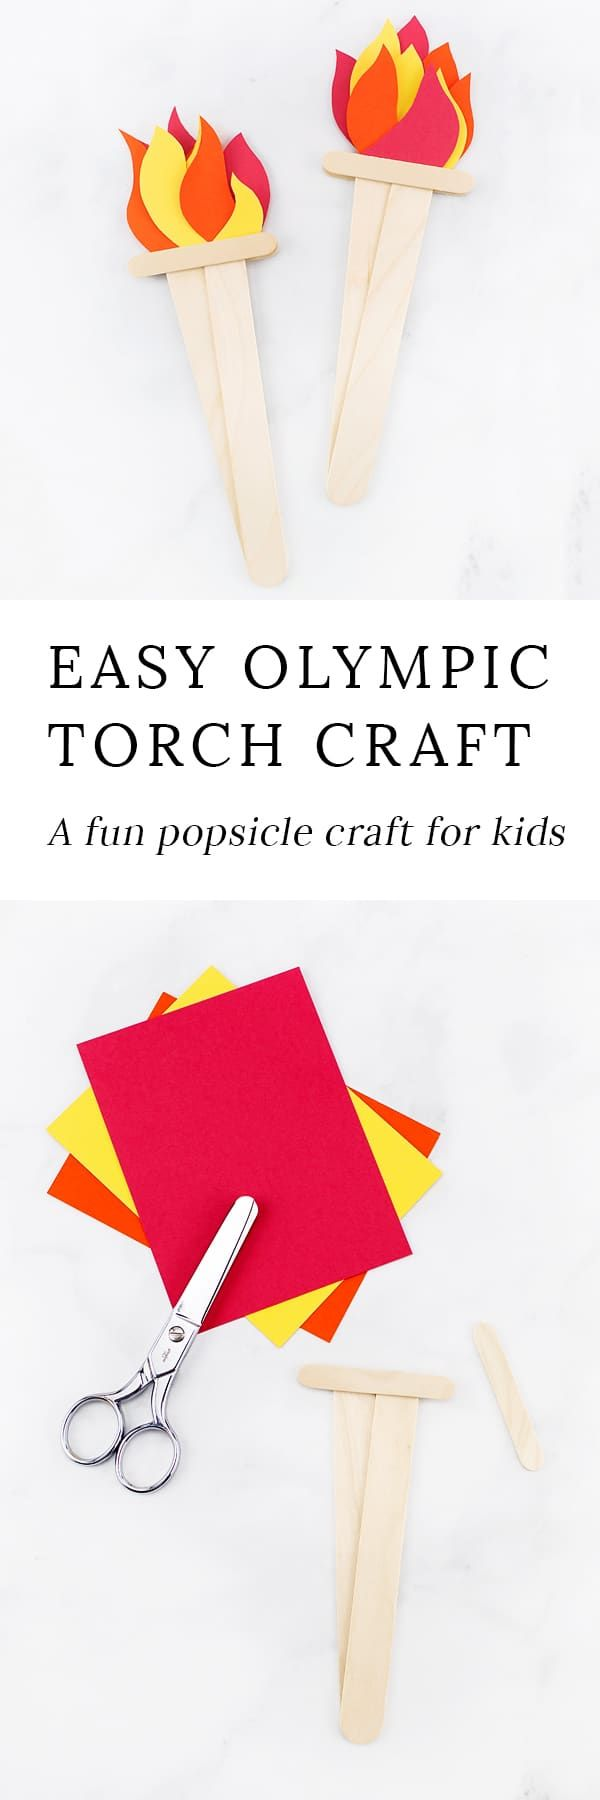 Looking for an easy Olympics craft for kids? This simple Olympic Torch Craft, created from construction paper and wooden craft sticks, is perfect for home or school. via @https://www.pinterest.com/fireflymudpie/